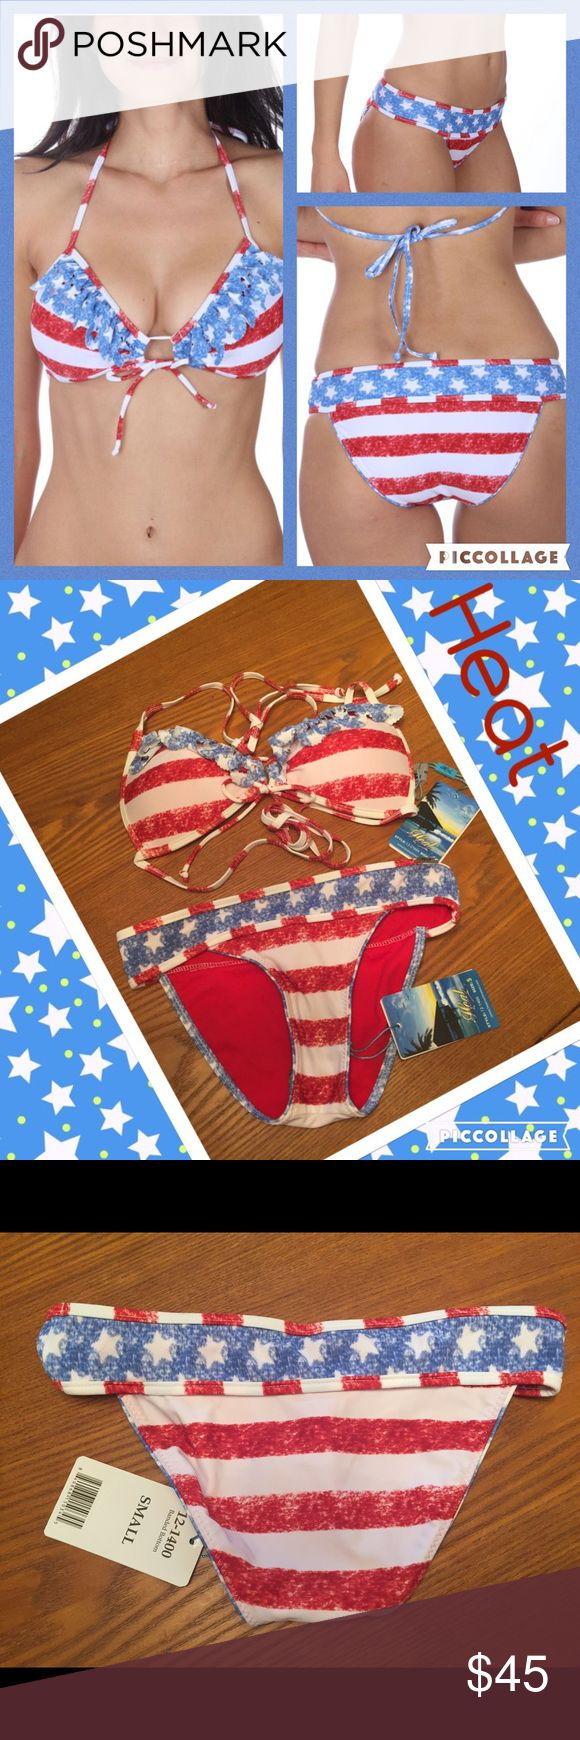 ❤️HEAT stars and stripe bikini NWT size small❤️ ❤️HEAT stars and stripe bikini NWT size Small. This is just in time for 4th of July but great for all summer as well. 80% nylon 20% spandex. ❤️ Heat Swim Bikinis